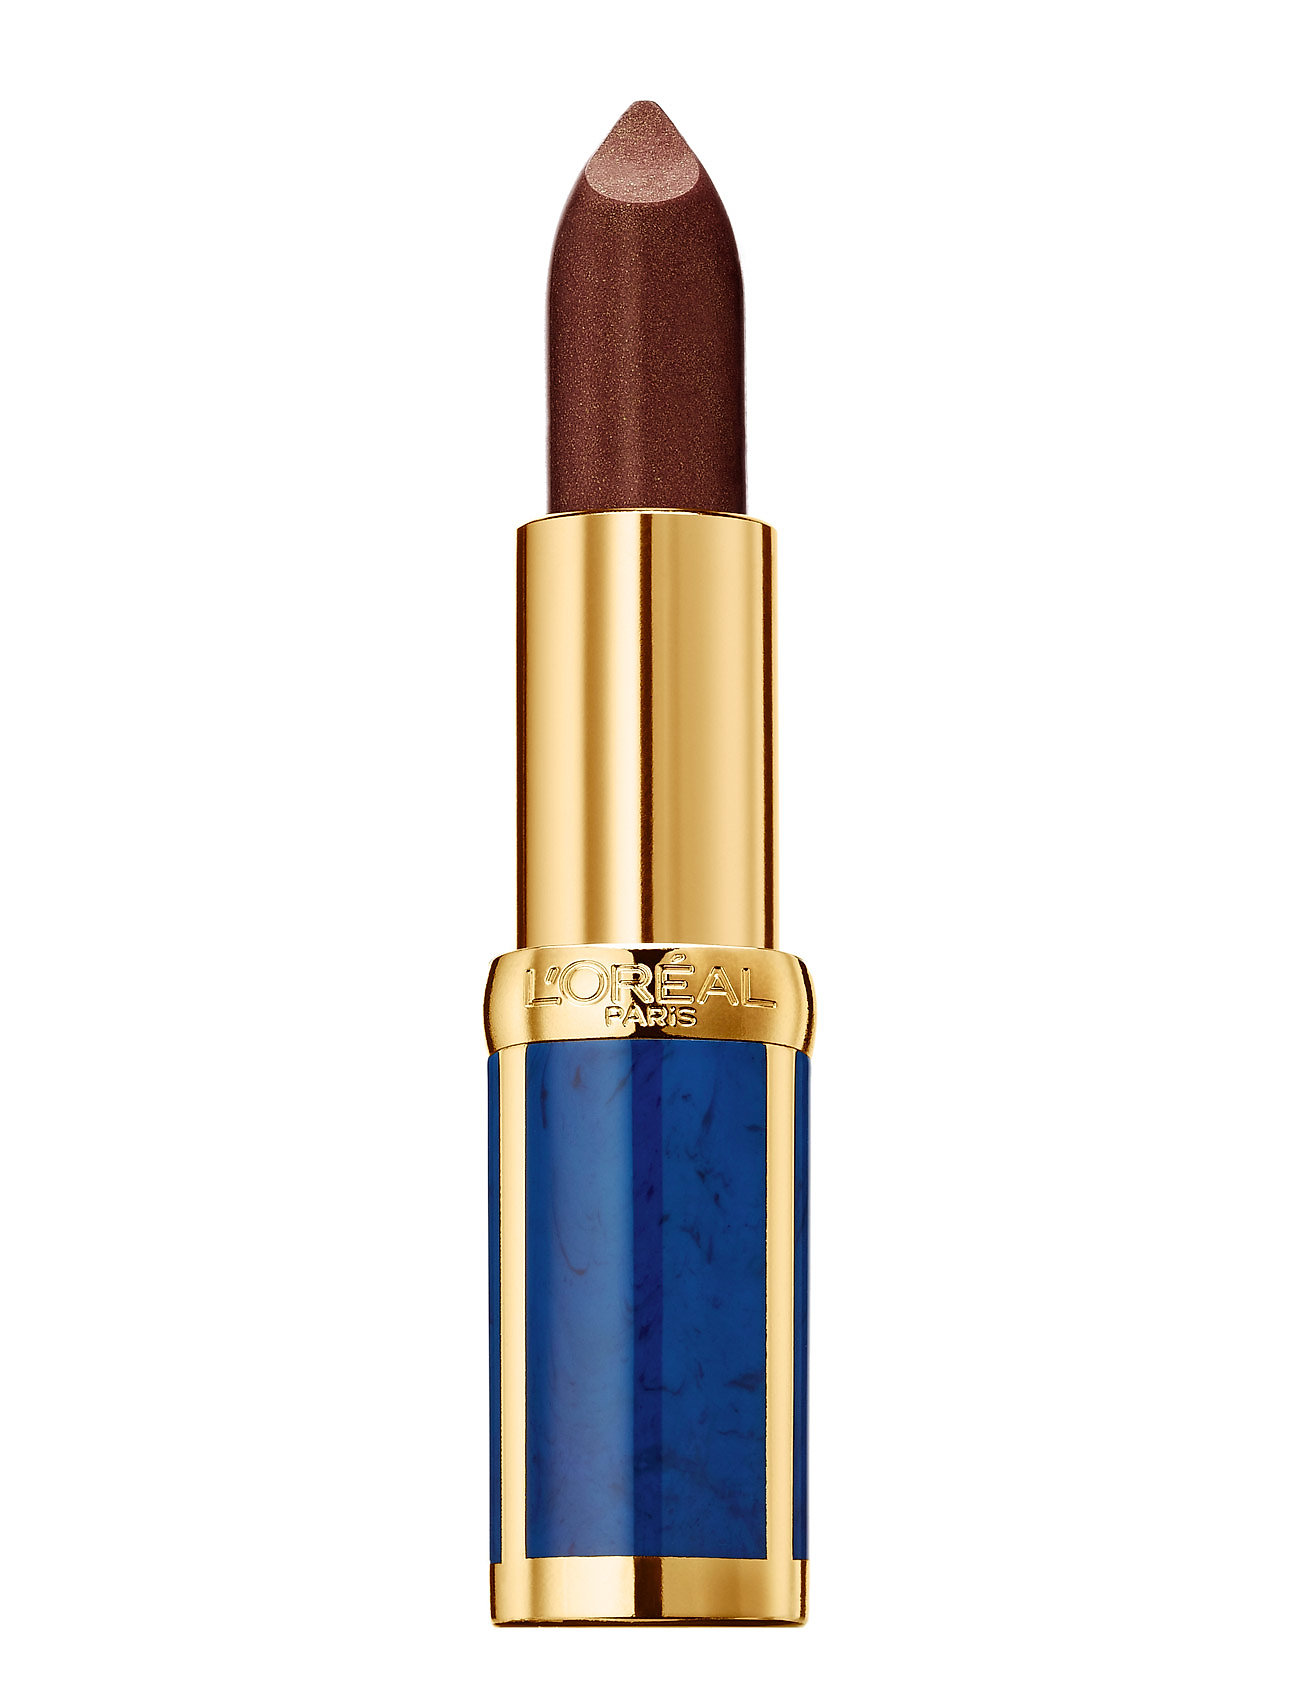 L'Oréal Paris COLOR RICHE X BALMAIN ROCK